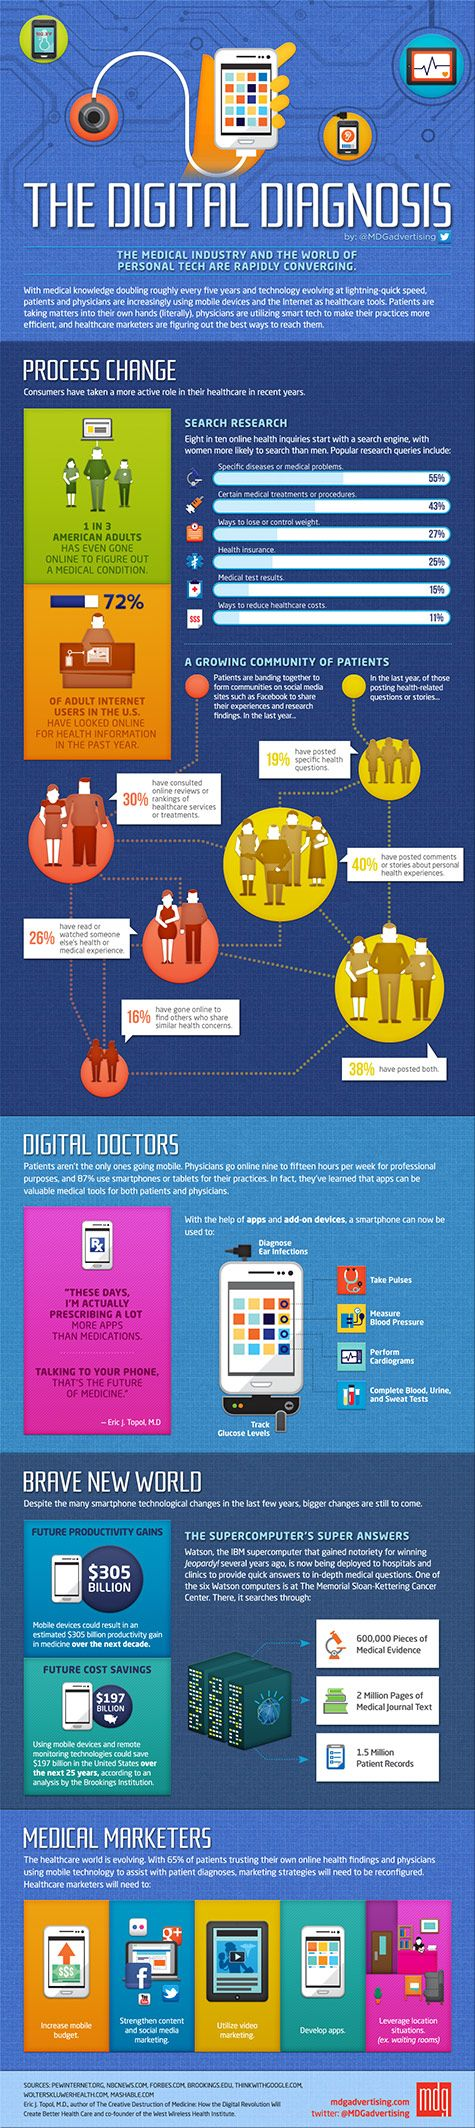 The Digital Diagnosis: The Medical Industry and the World of Personal Tech Are Rapidly Converging